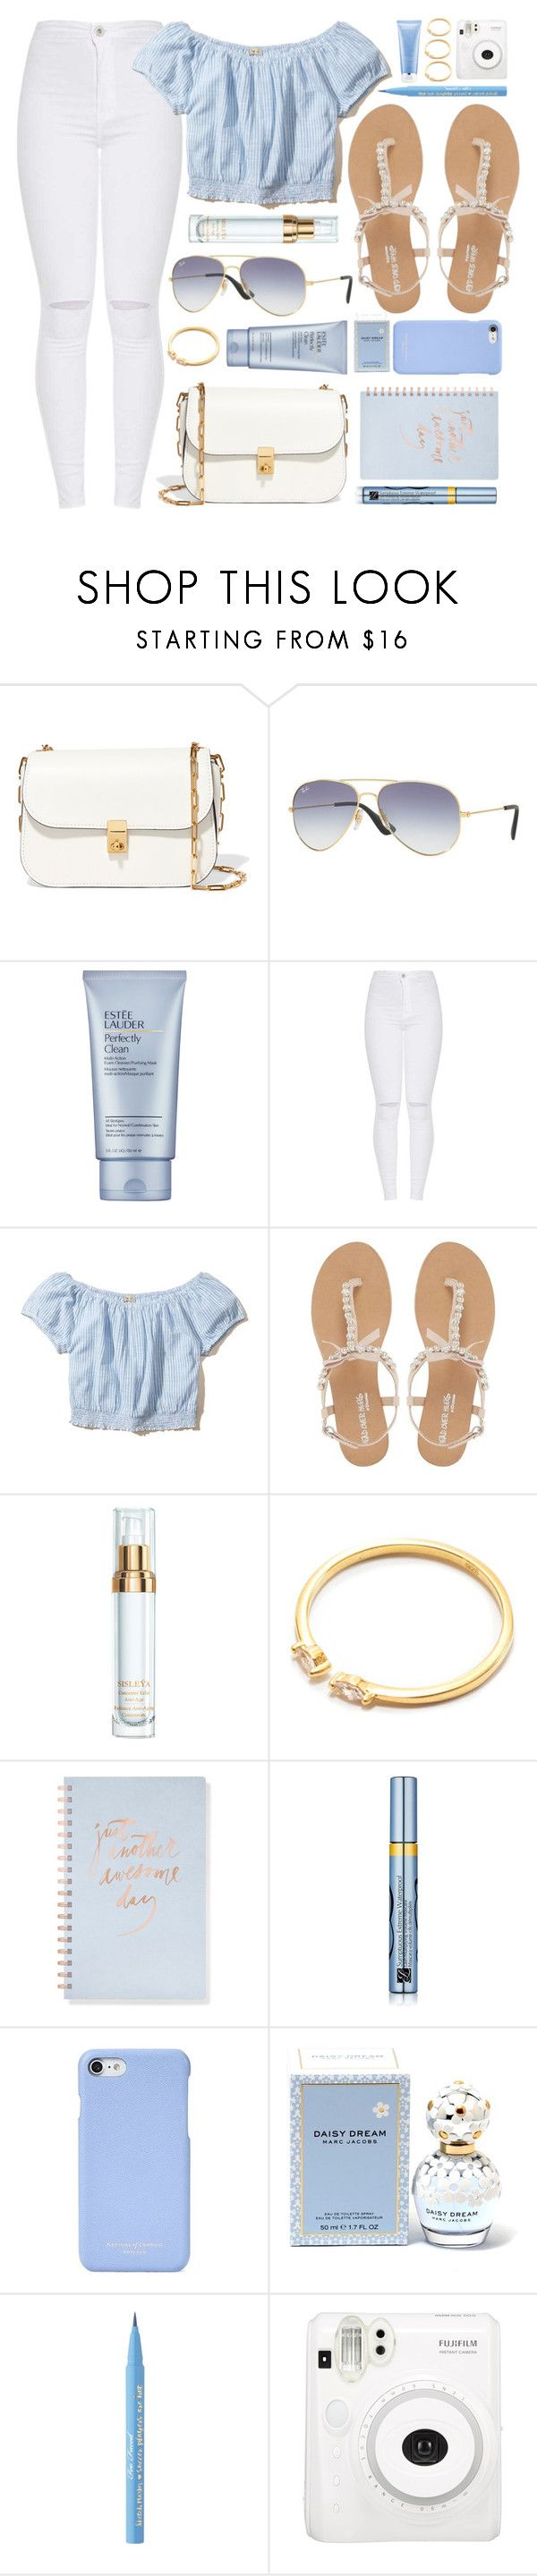 """""""Light"""" by smartbuyglasses ❤ liked on Polyvore featuring Valentino, Ray-Ban, Estée Lauder, Hollister Co., Head Over Heels by Dune, Sisley, Fringe, Aspinal of London, Marc Jacobs and Too Faced Cosmetics"""